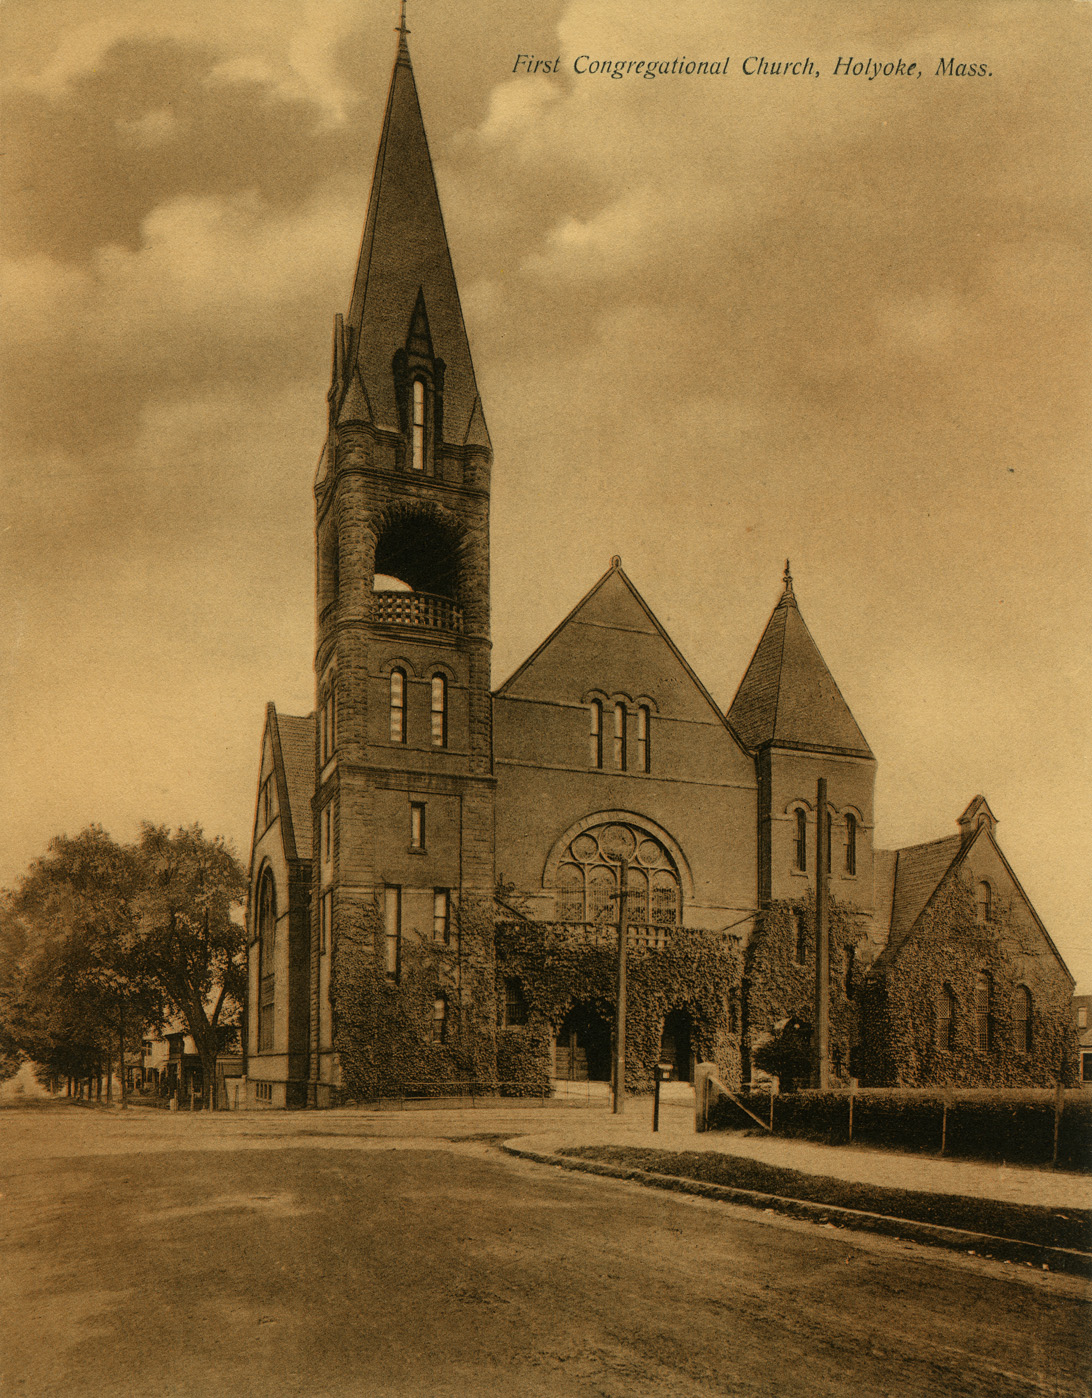 Image of First Congregational Church, ca.1910